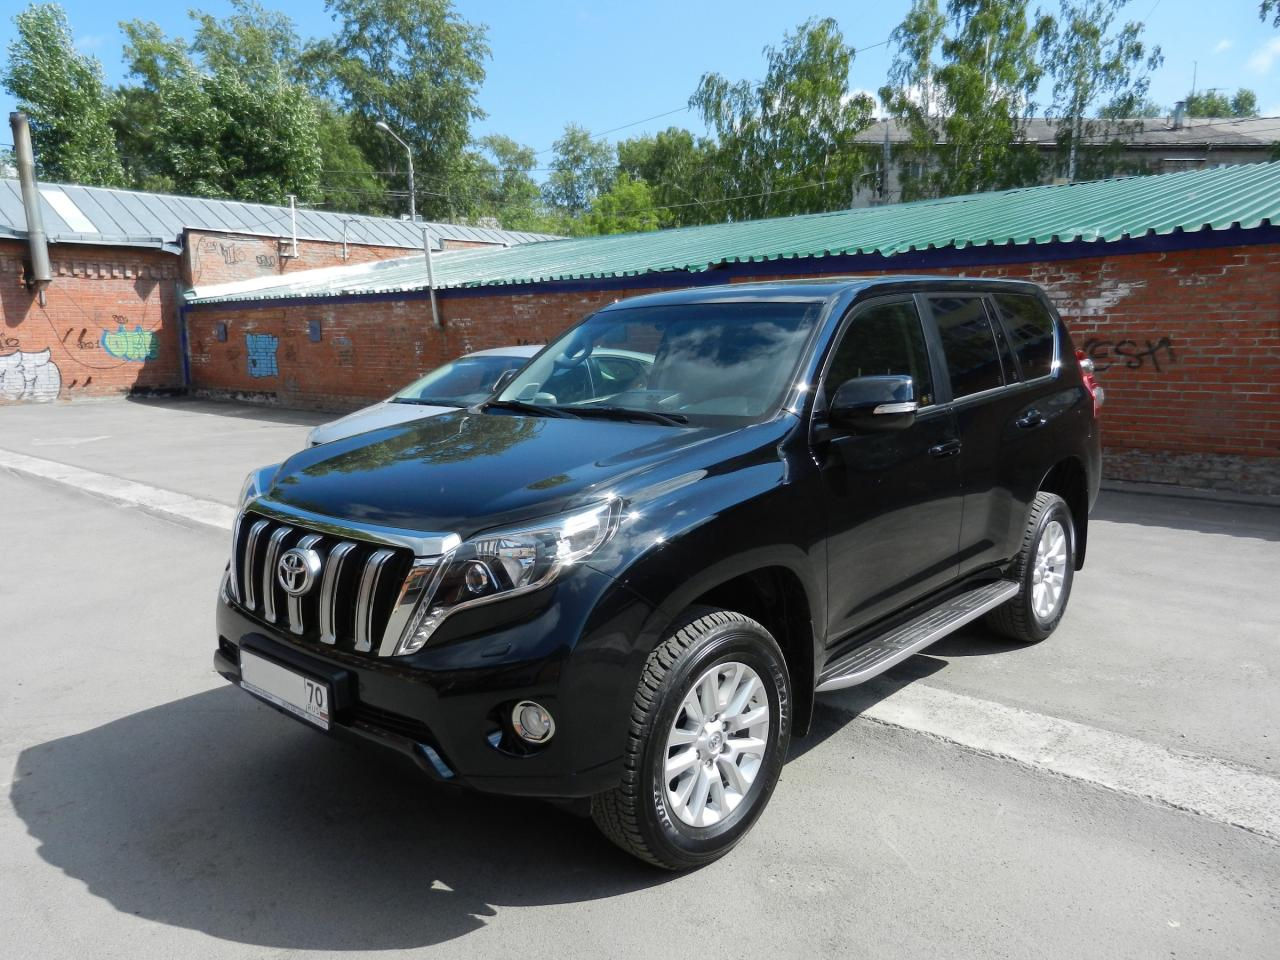 Седан Toyota Land Cruiser Prado - #1